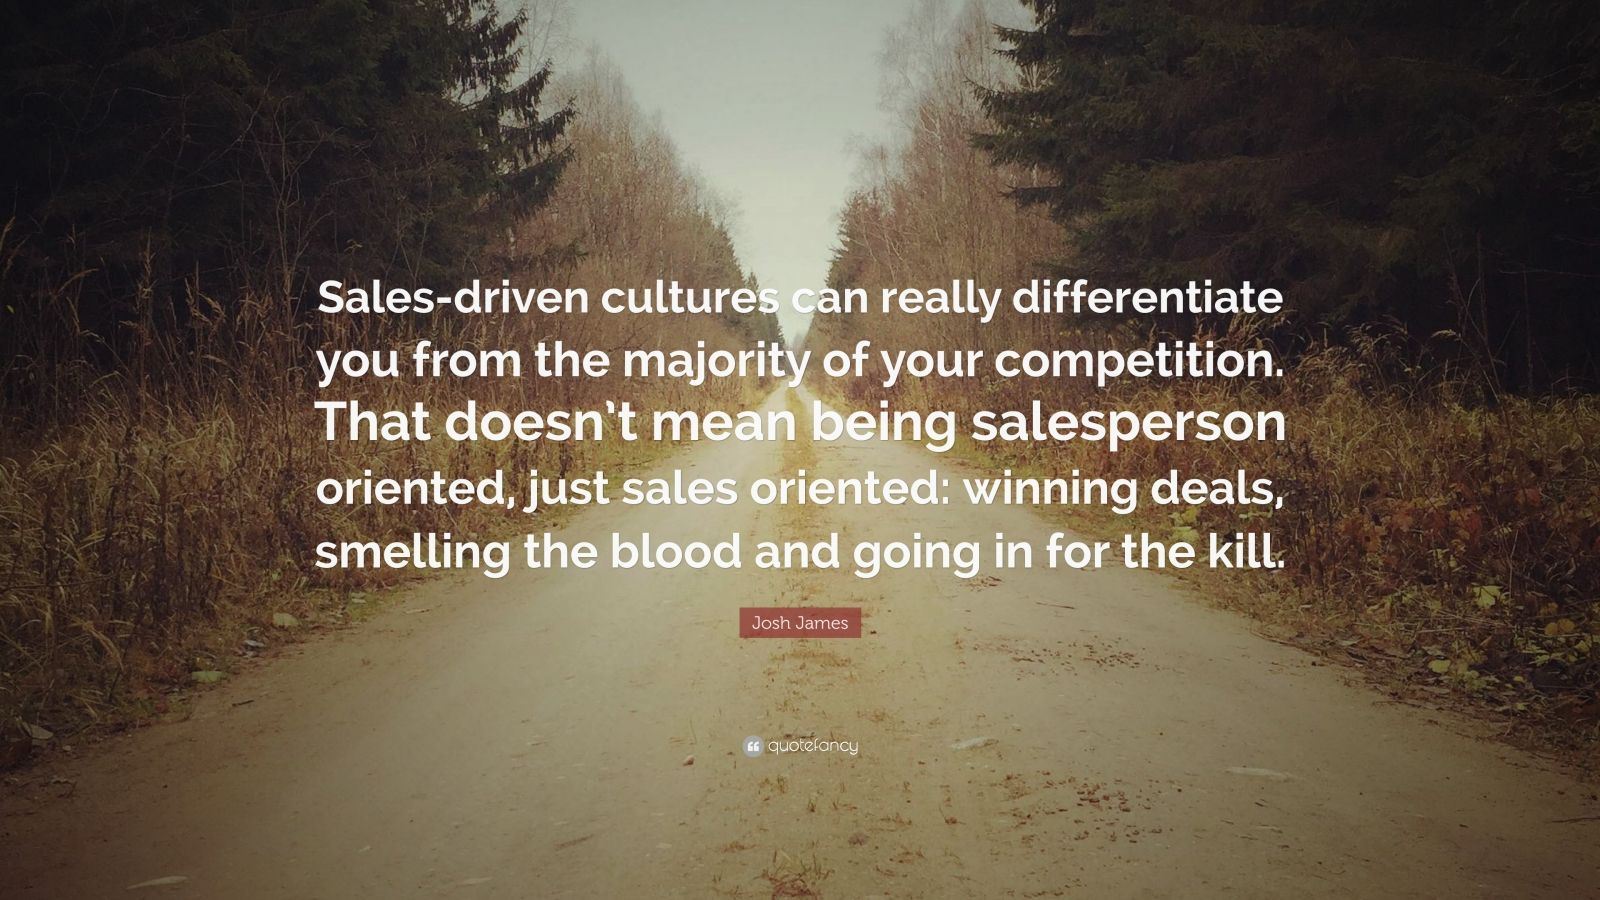 """Josh James Quote: """"Sales-driven cultures can really differentiate you from the majority of your competition. That doesn't mean being salesperson oriented, just sales oriented: winning deals, smelling the blood and going in for the kill."""""""